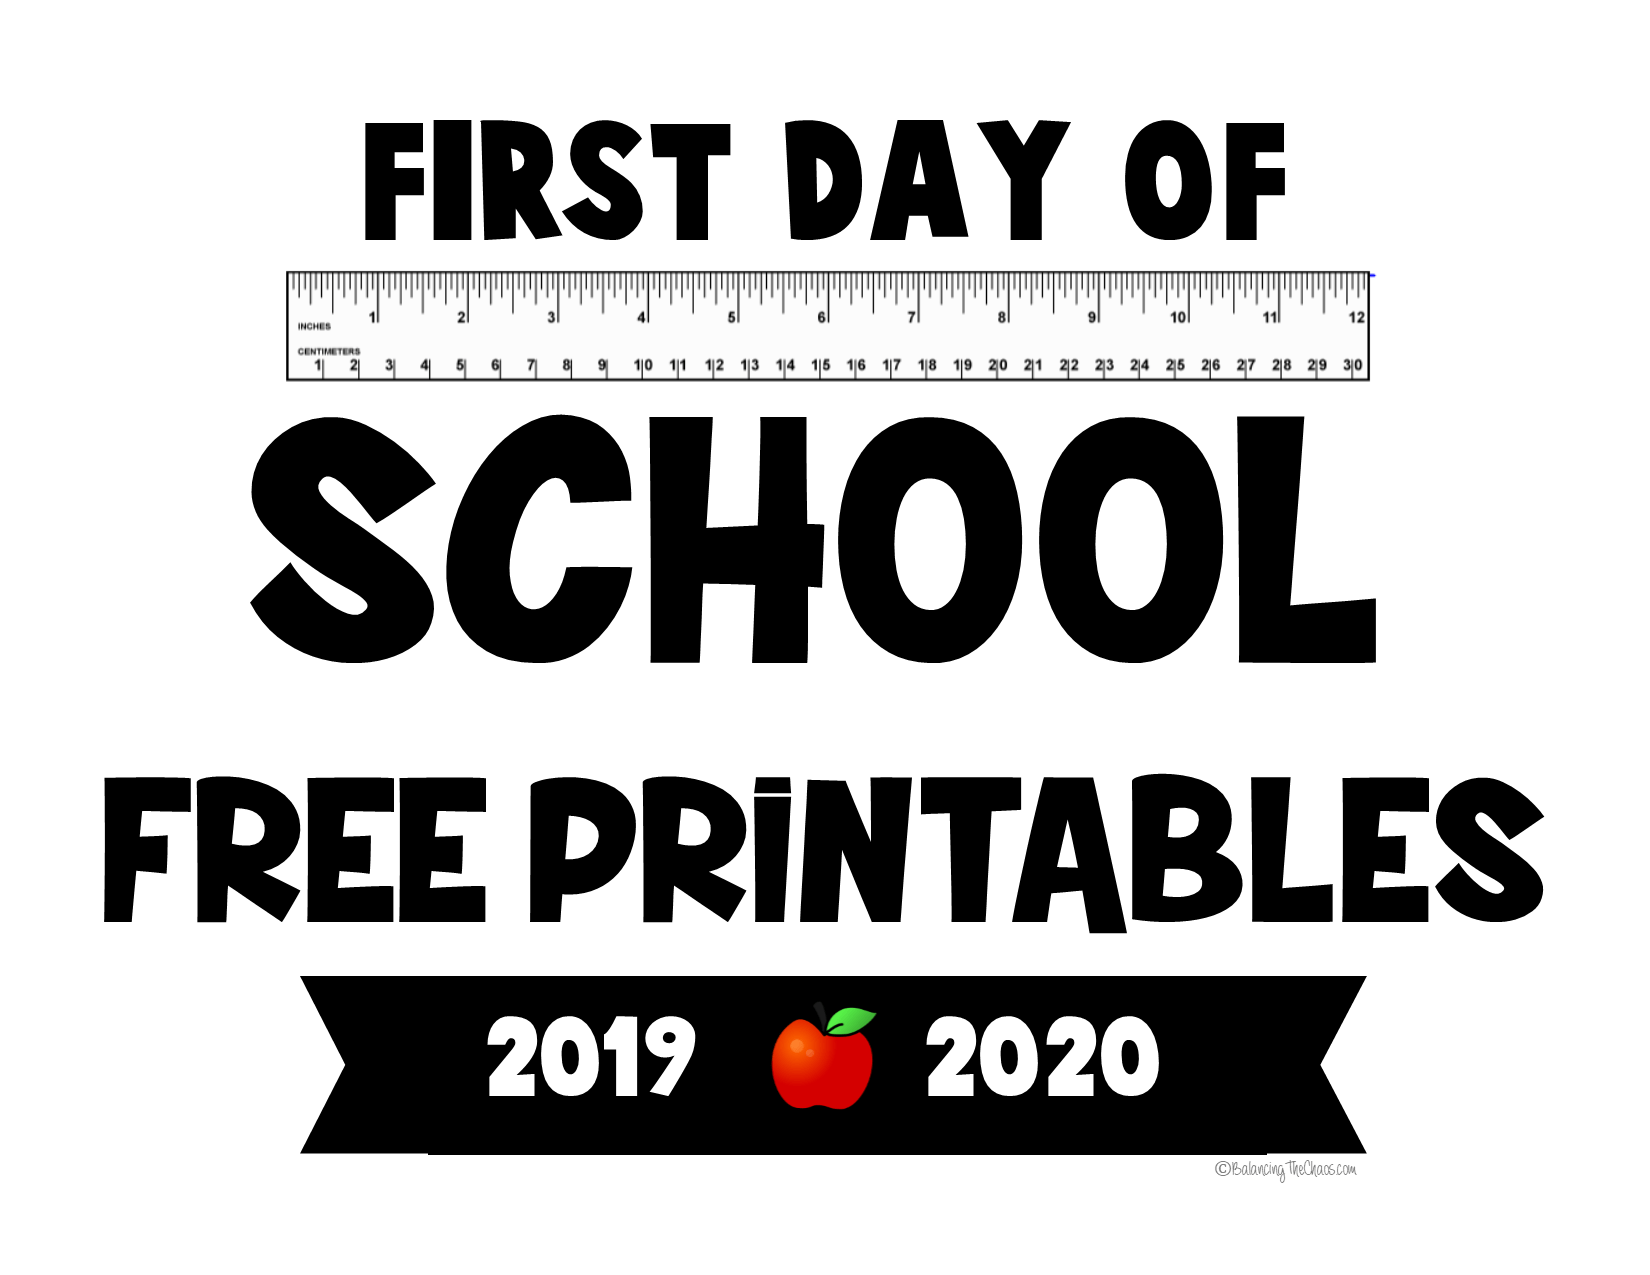 Free Printable 2019 2020 First Day Of School Signs